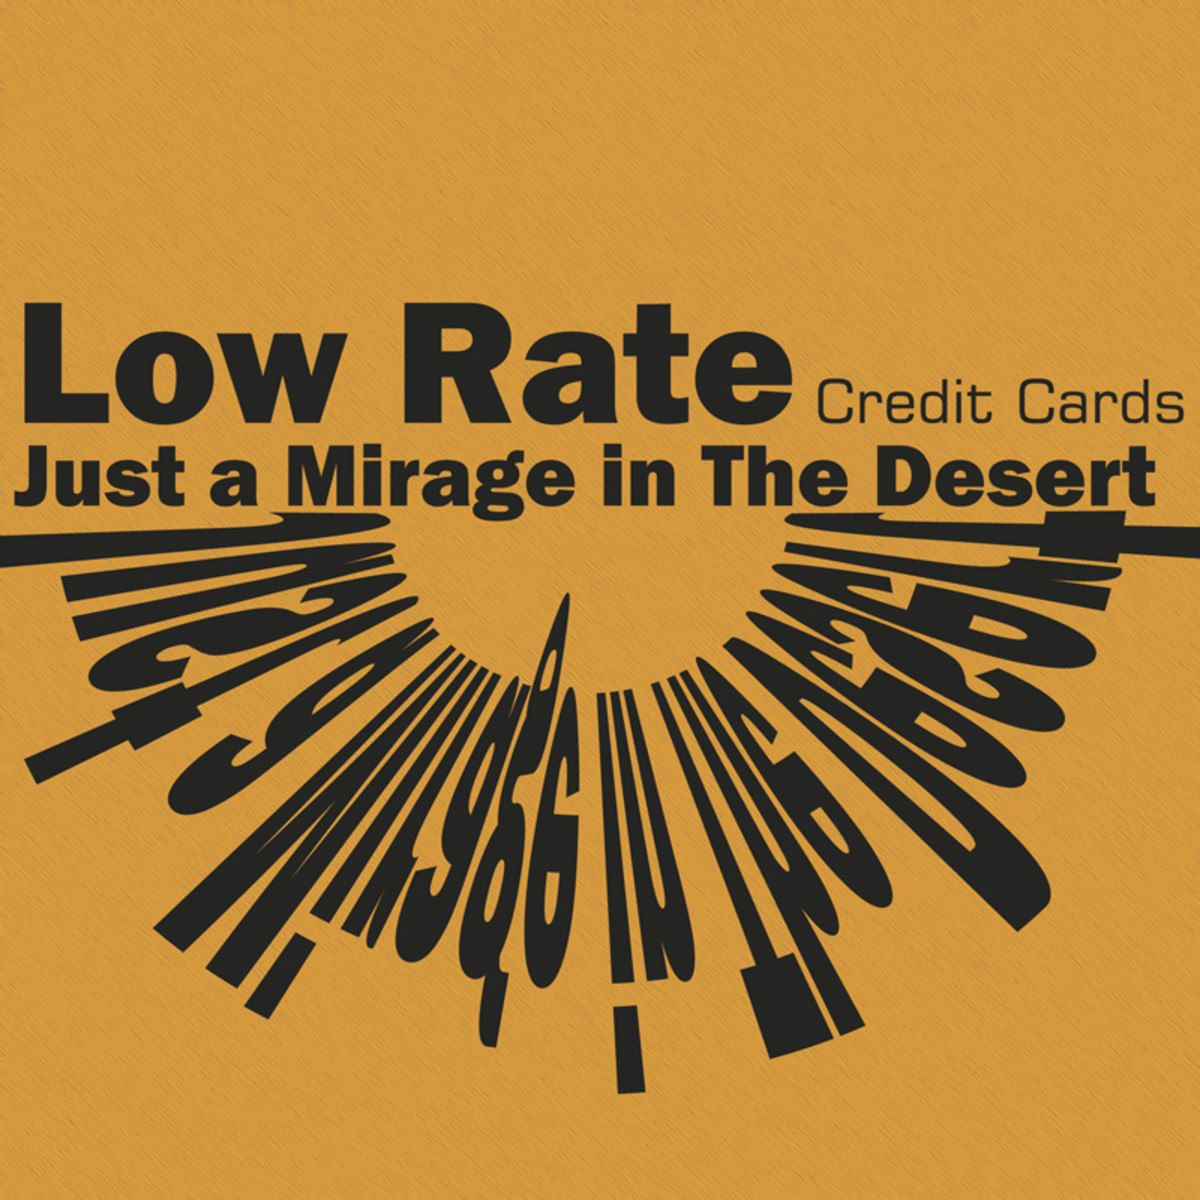 Low Rate Credit Cards: Just a Mirage in The Desert